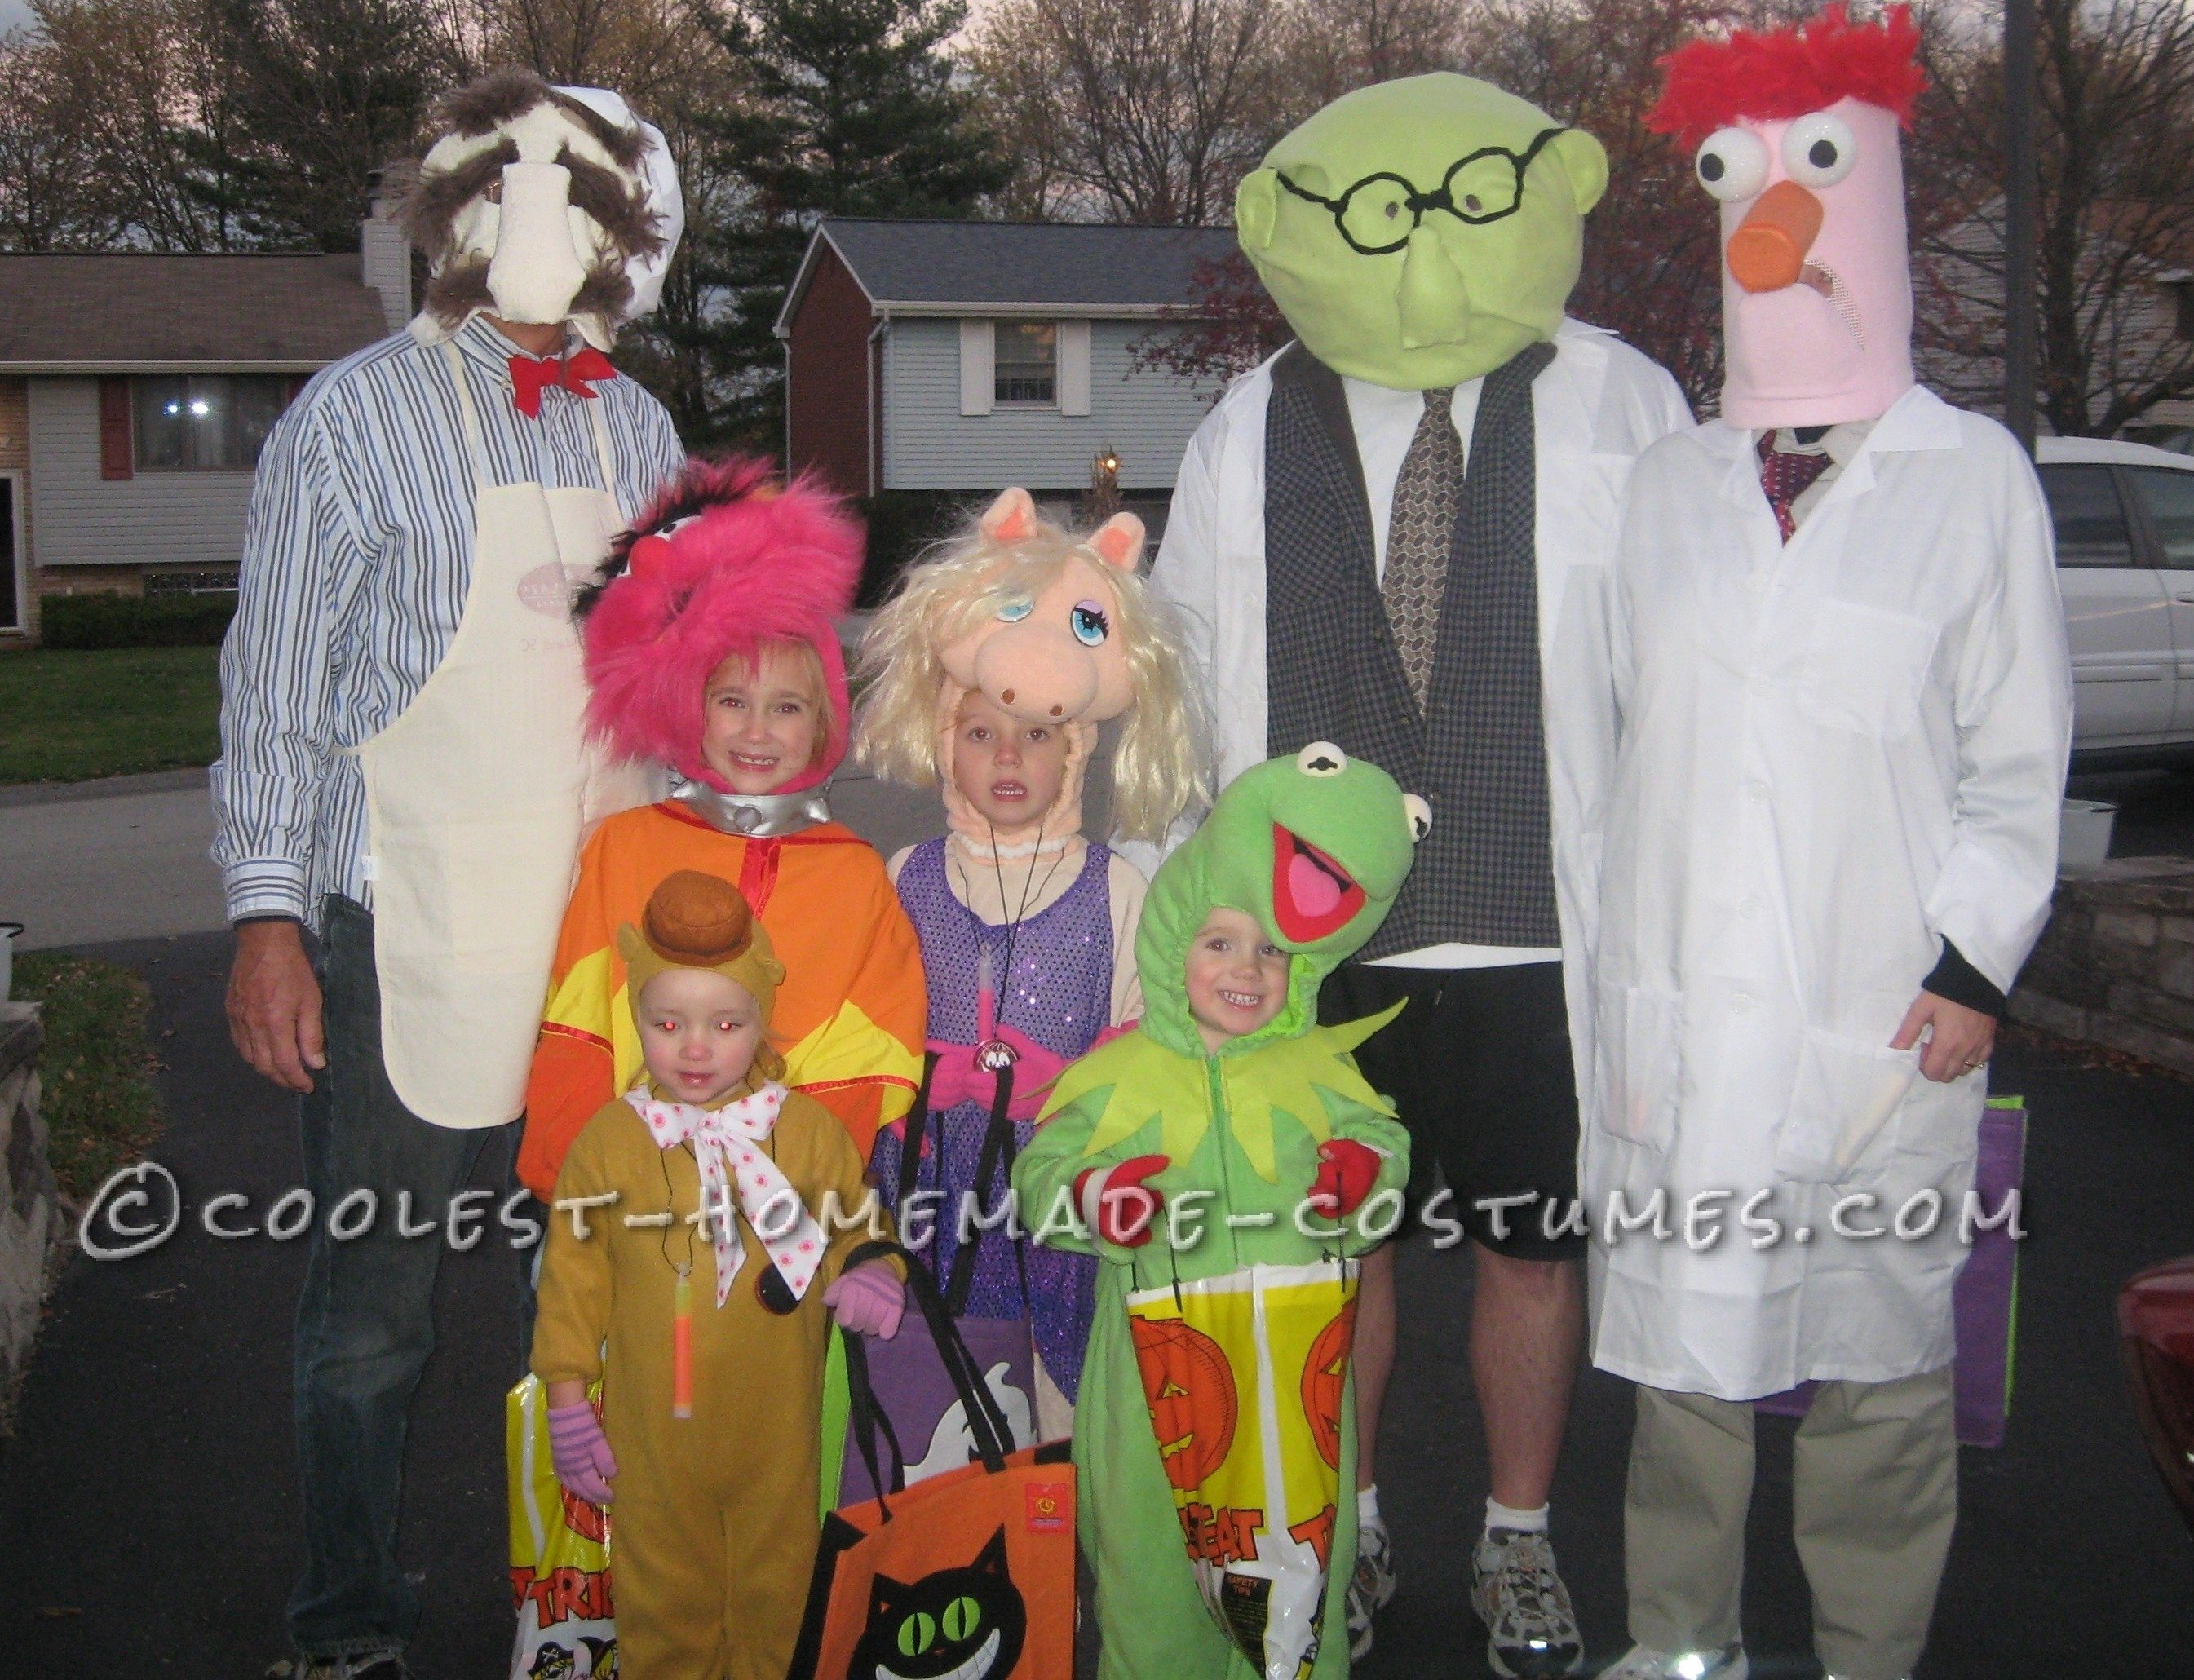 10 Awesome Good Homemade Halloween Costume Ideas coolest homemade muppets family group costume costumes halloween